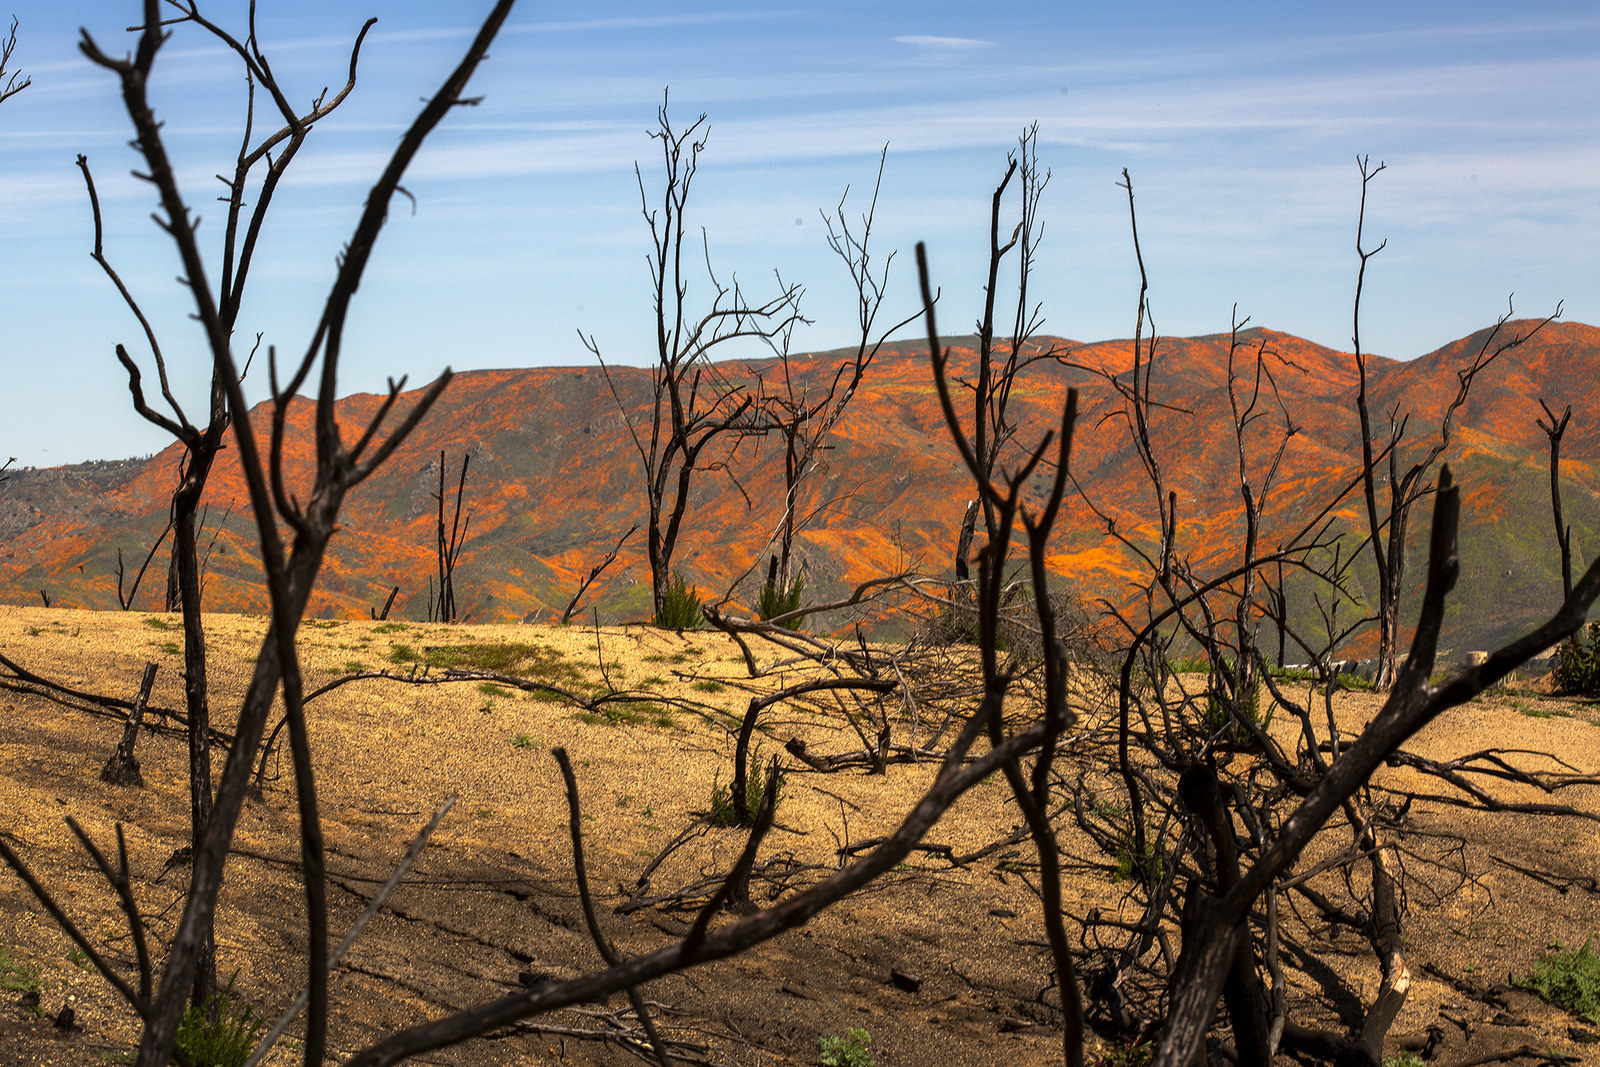 California poppies bloom near a hill torched by 2018's Holy fire, in Lake Elsinore, March 15.